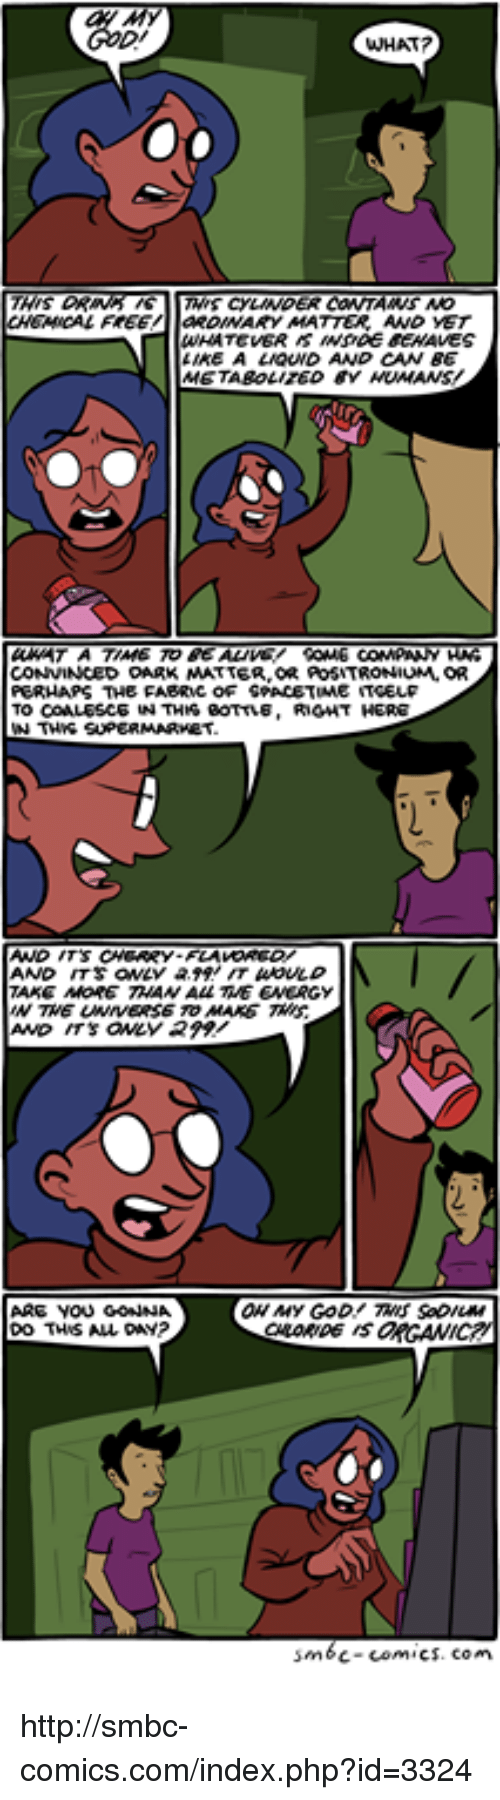 Smbc Comic: WHAT?  aROWWAY MATTER AND VET  AREA  LMOUND AND CAN BE  CONVINCED OARK MATTER AOSTRONIUM, OR  PERHAPS THE FABRwc oF SPACETIME  TO COALESCE  RIGHT HERE  W TWWG SUPERMARVEST  AND ITS  TAKE MORE THAN ALL TWE ENERGY  ARE YOU GONN  DO THIS ALL  sm6c-comics. Con http://smbc-comics.com/index.php?id=3324